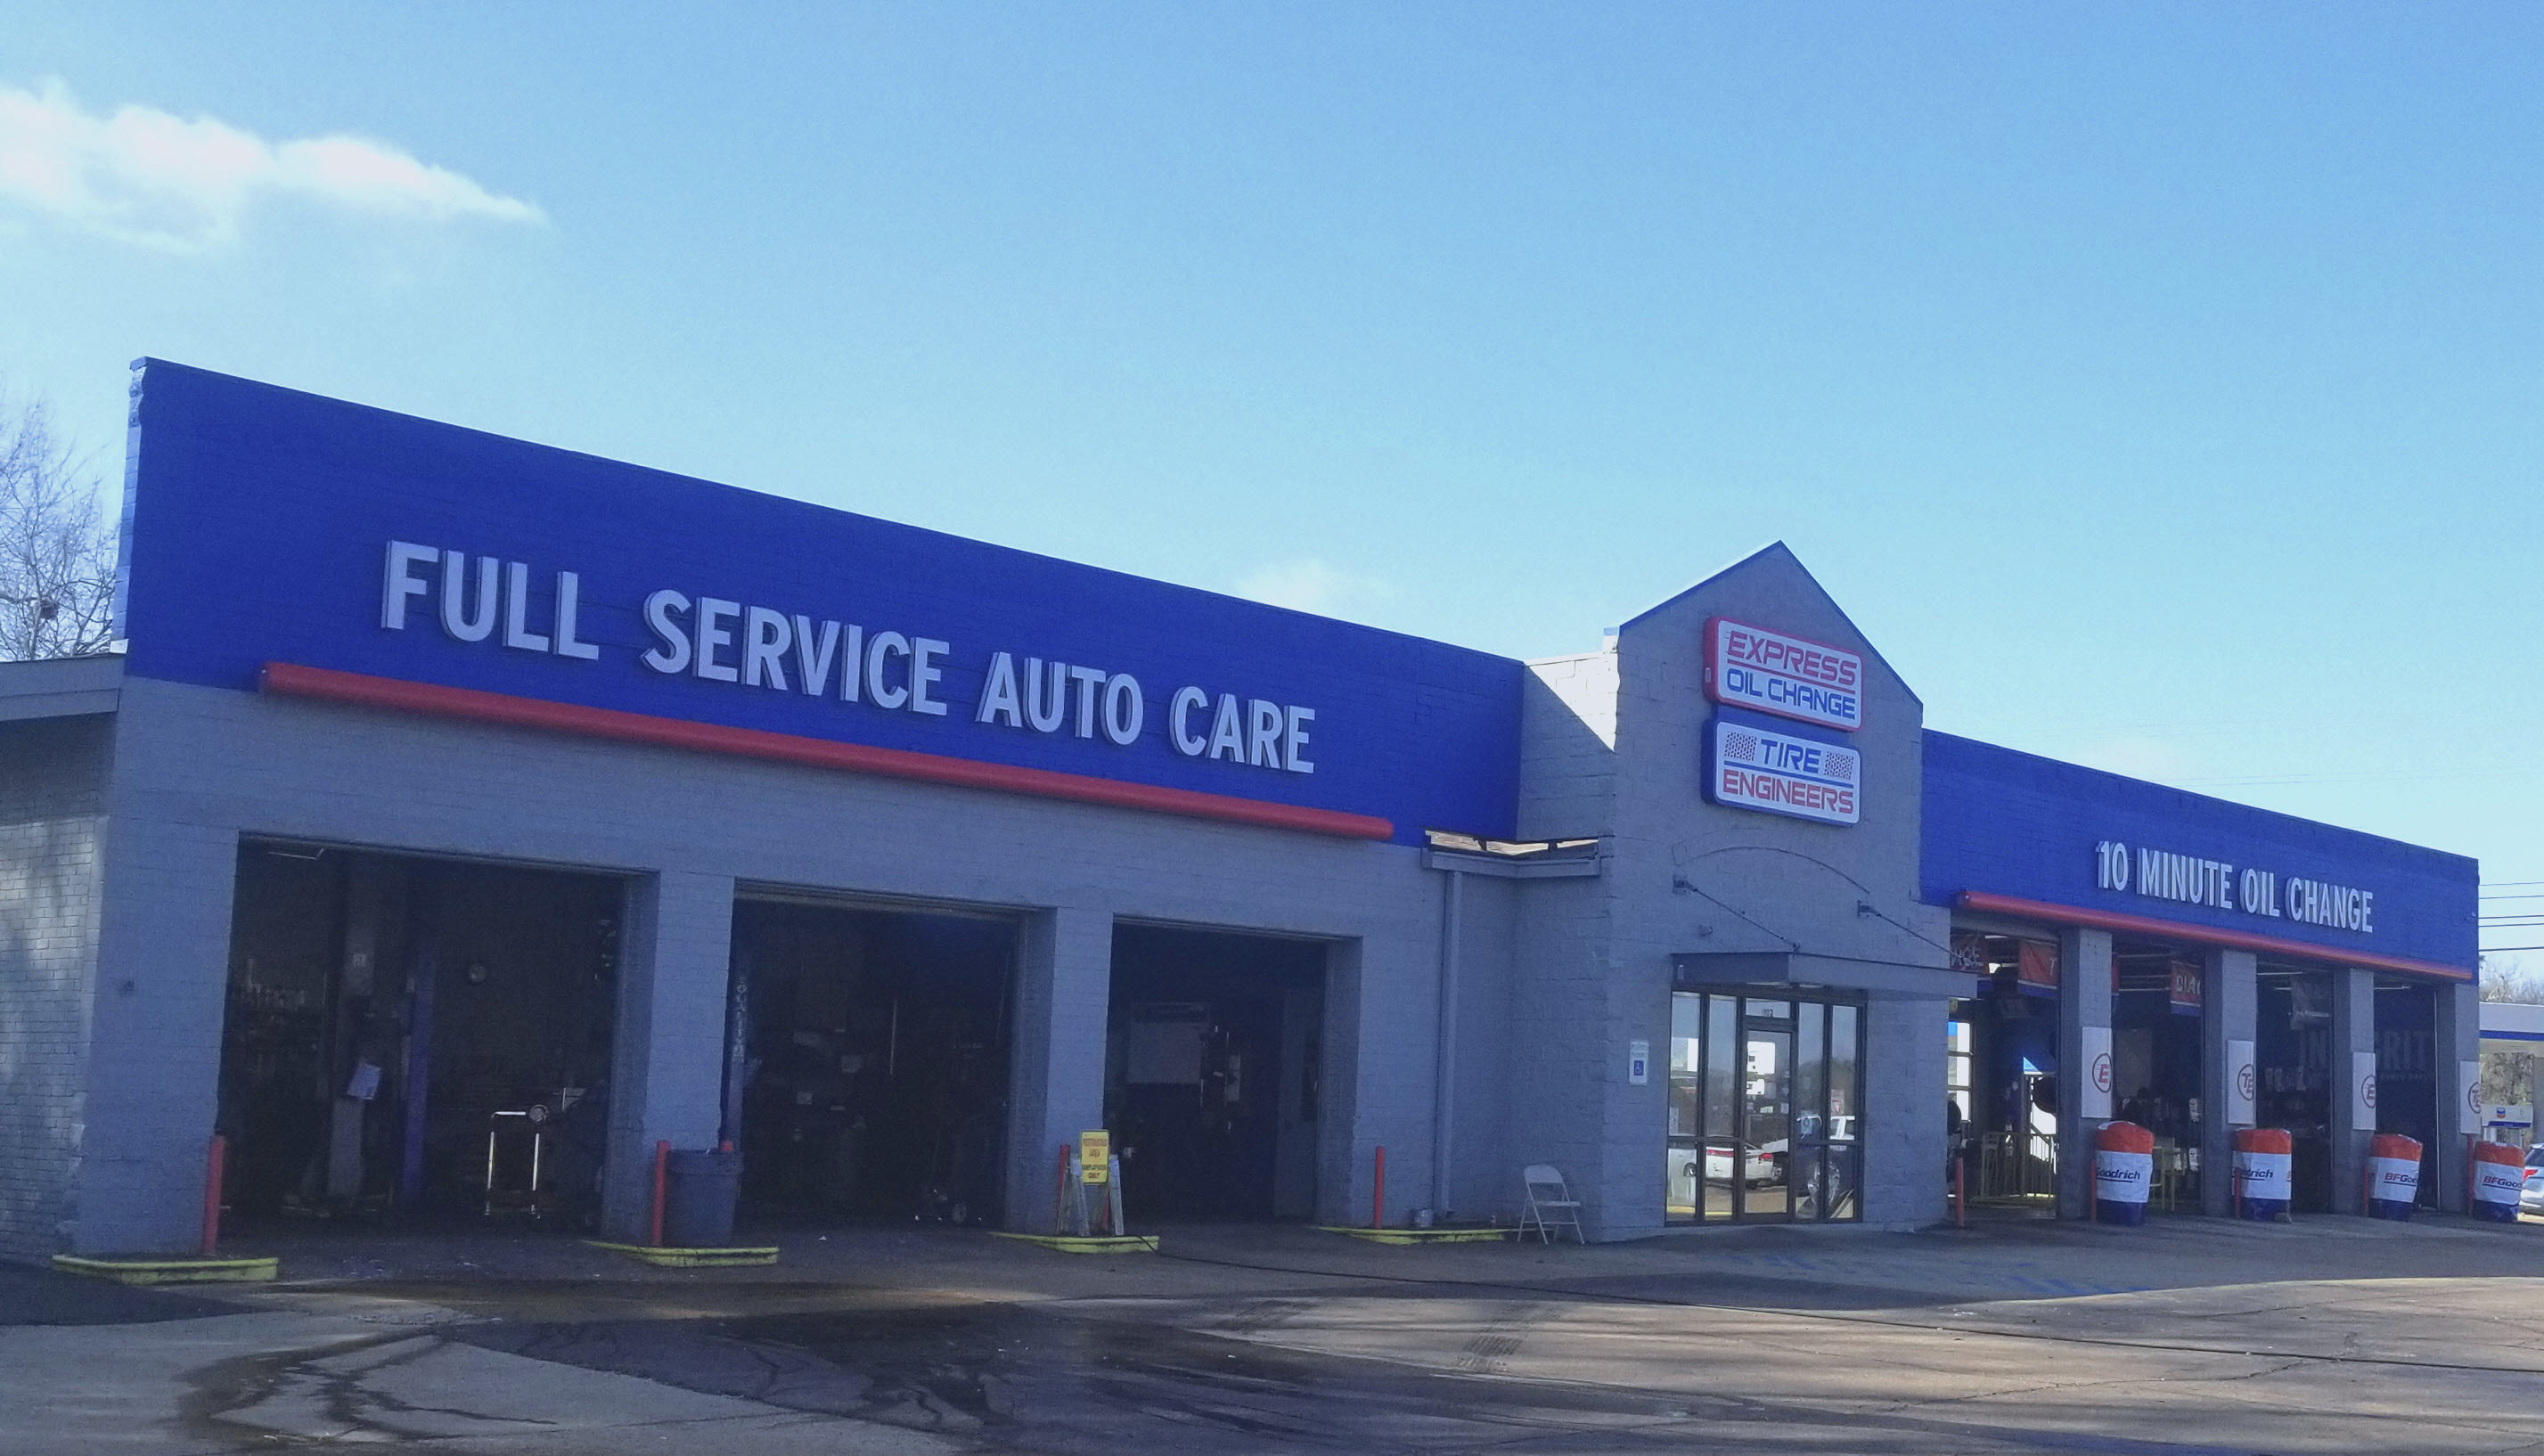 Express Oil Change & Tire Engineers Columbus, MS - Alabama Street store